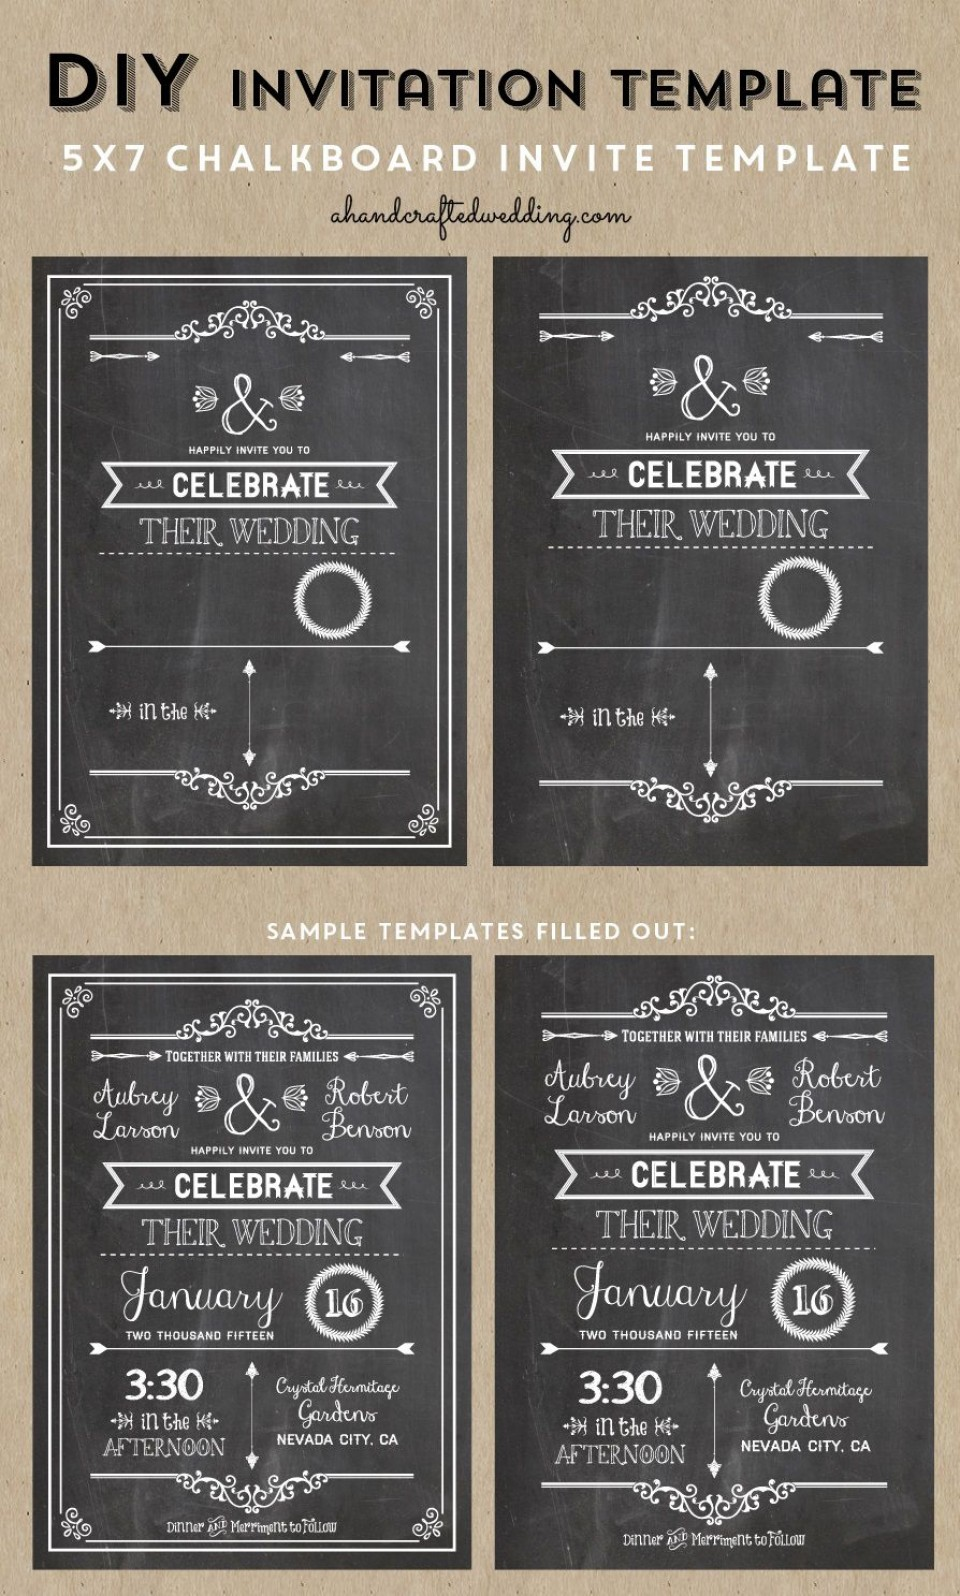 005 Wondrou Chalkboard Invitation Template Free Picture  Download Wedding960